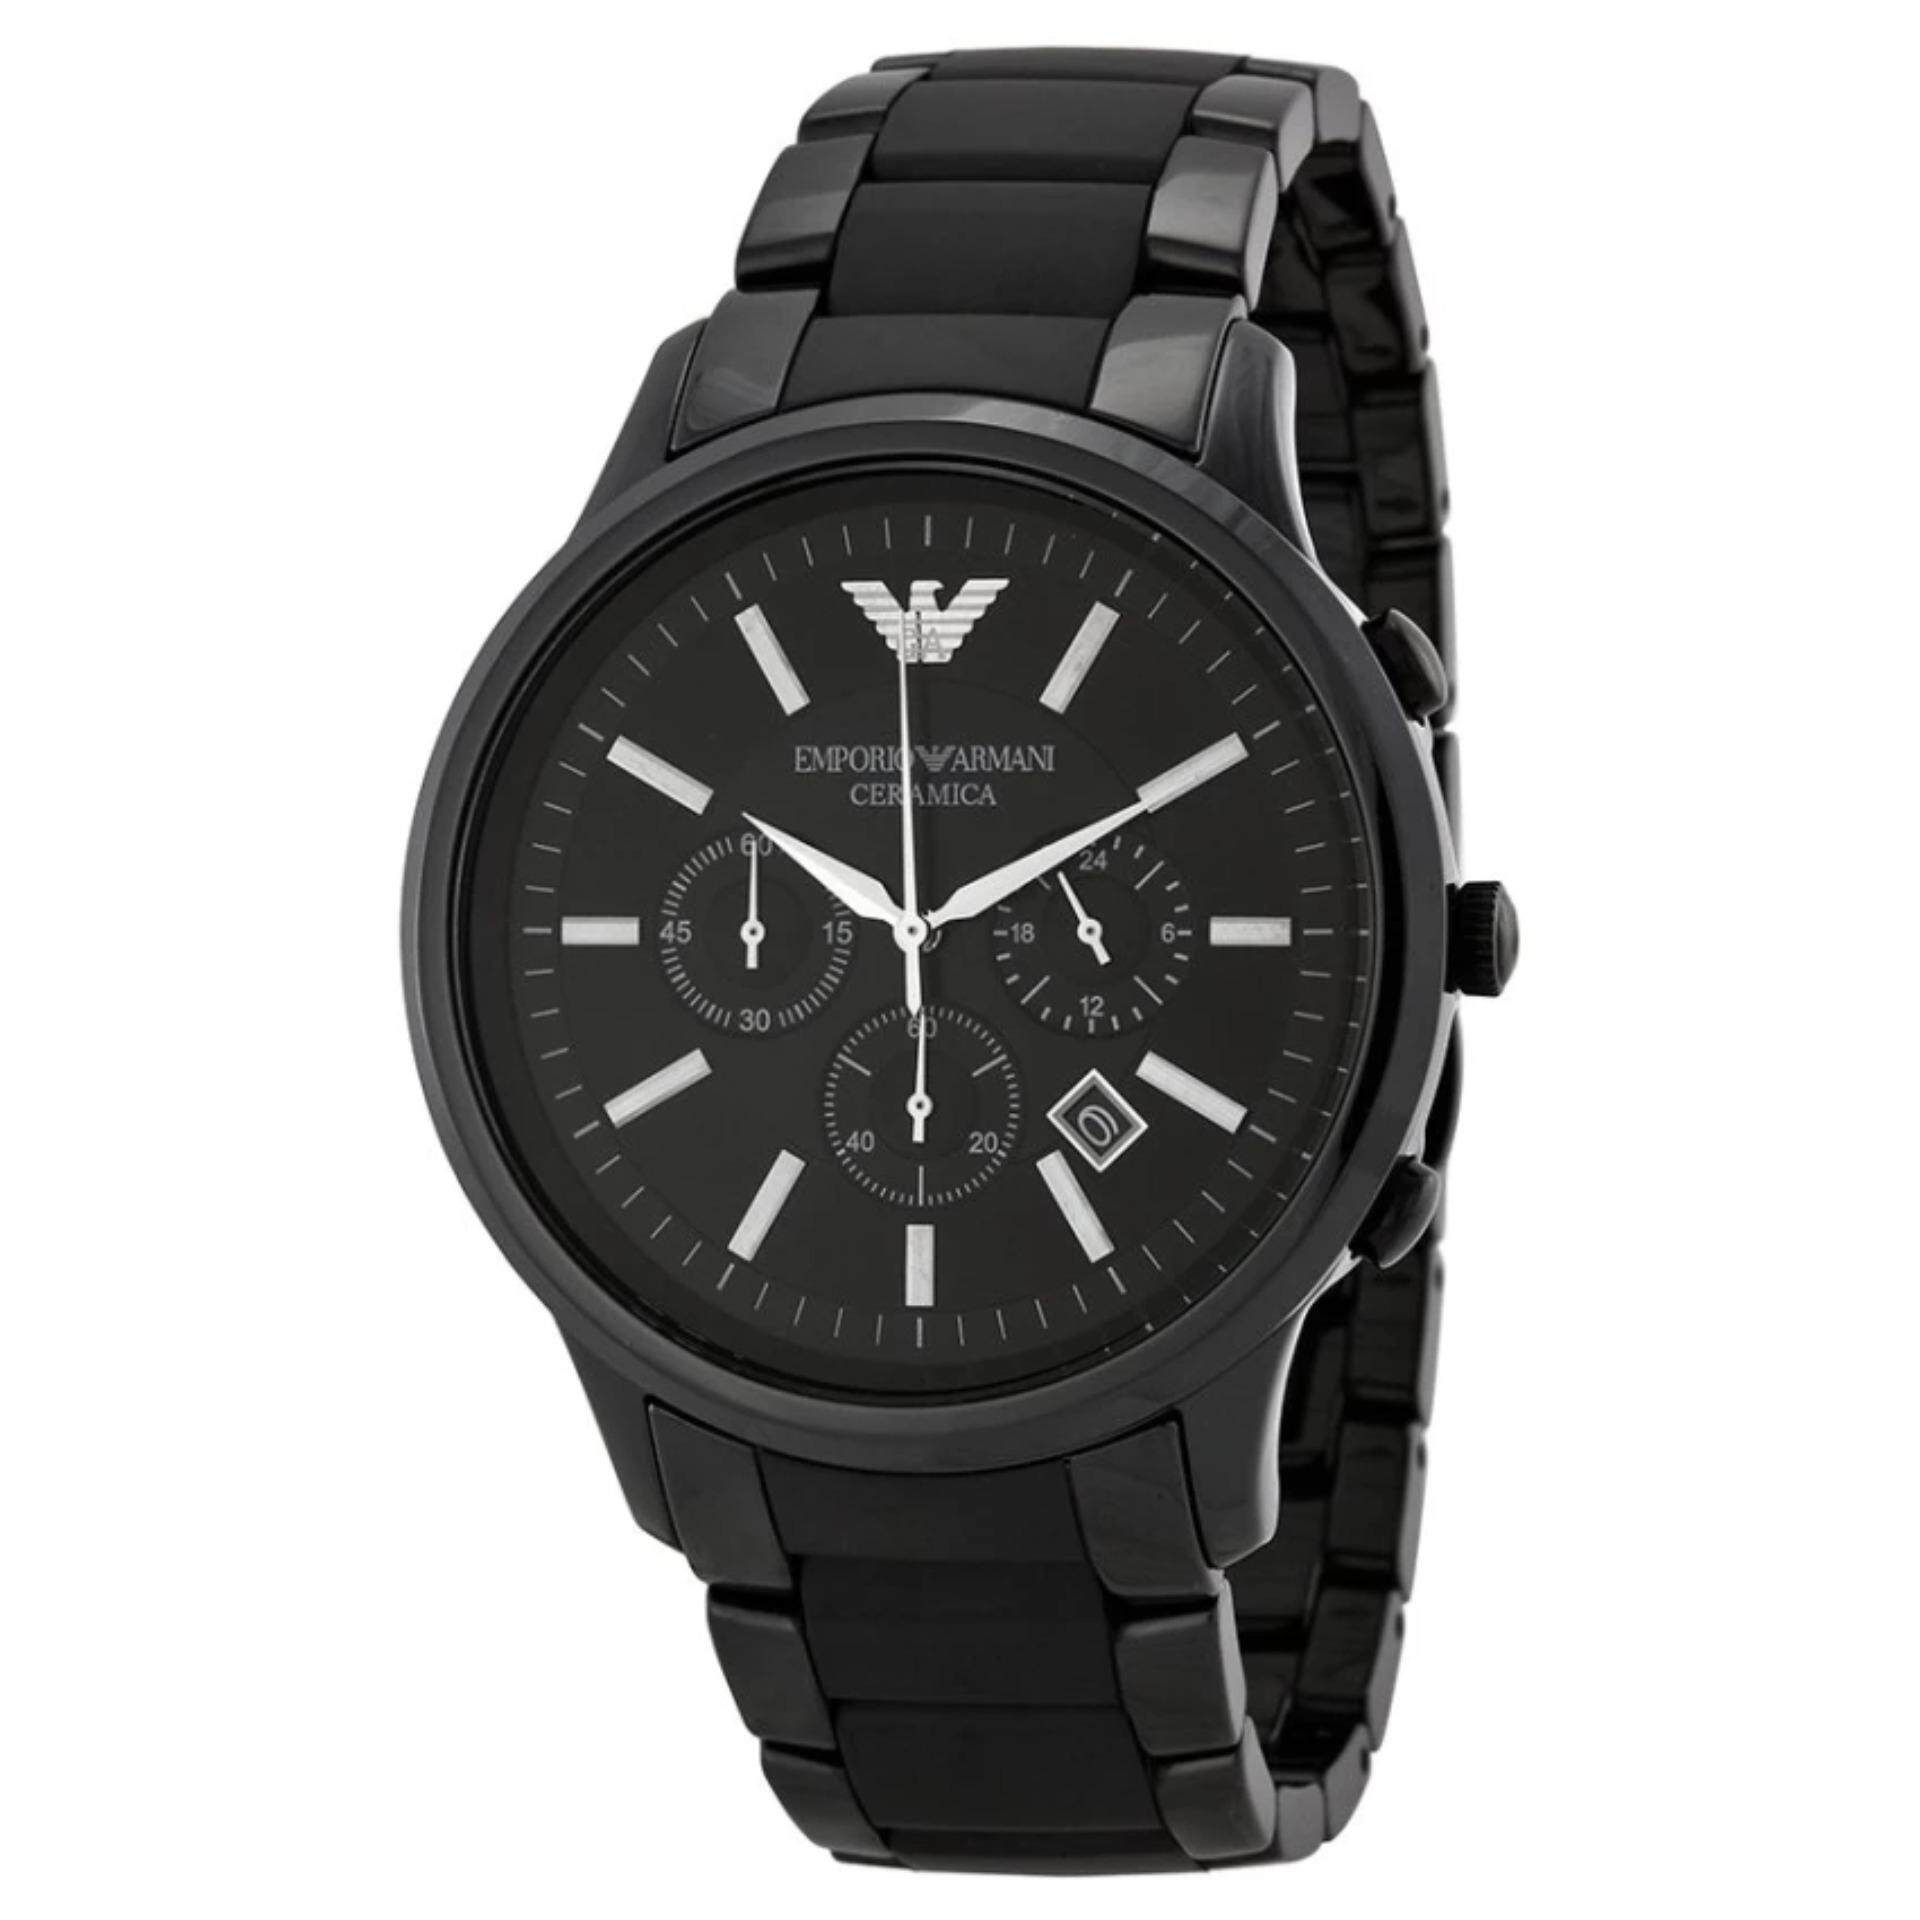 Emporio Armani นาฬิกา AR1451 Black Ceramica Mens Watch